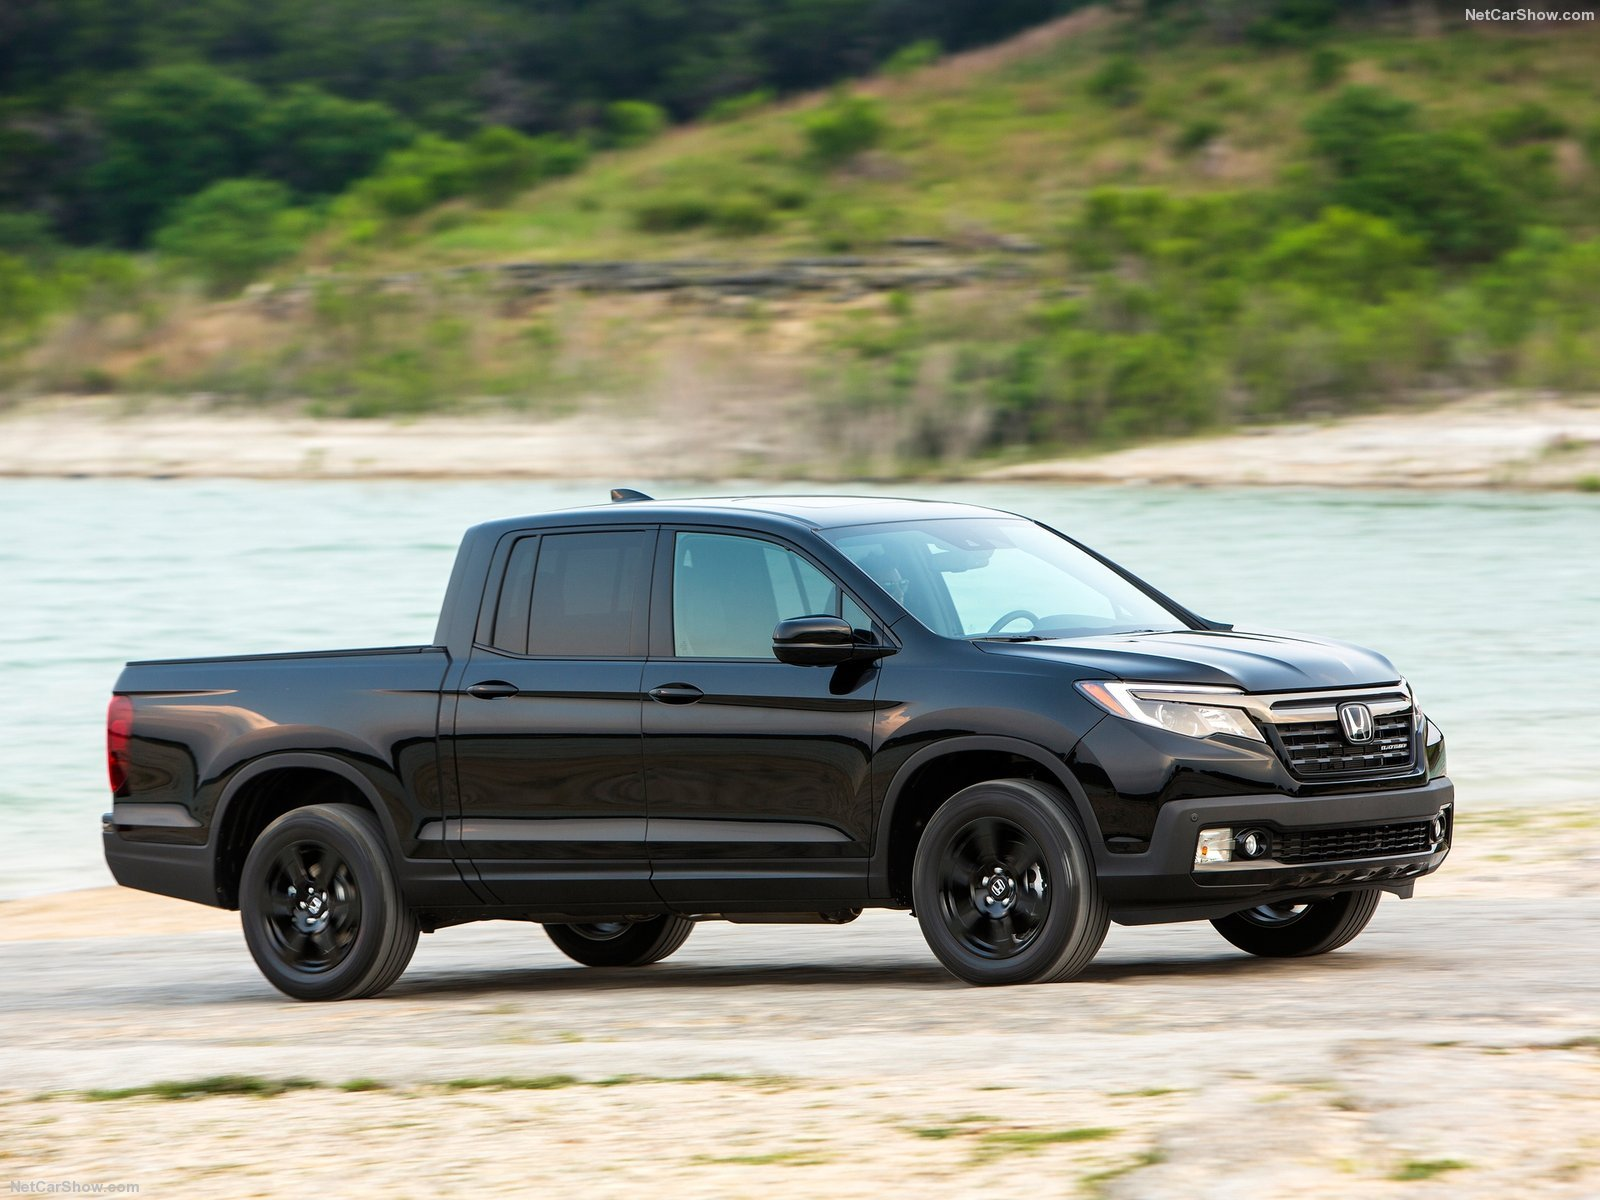 2016 Black Cars Edition Honda Pickup Ridgeline Wallpaper